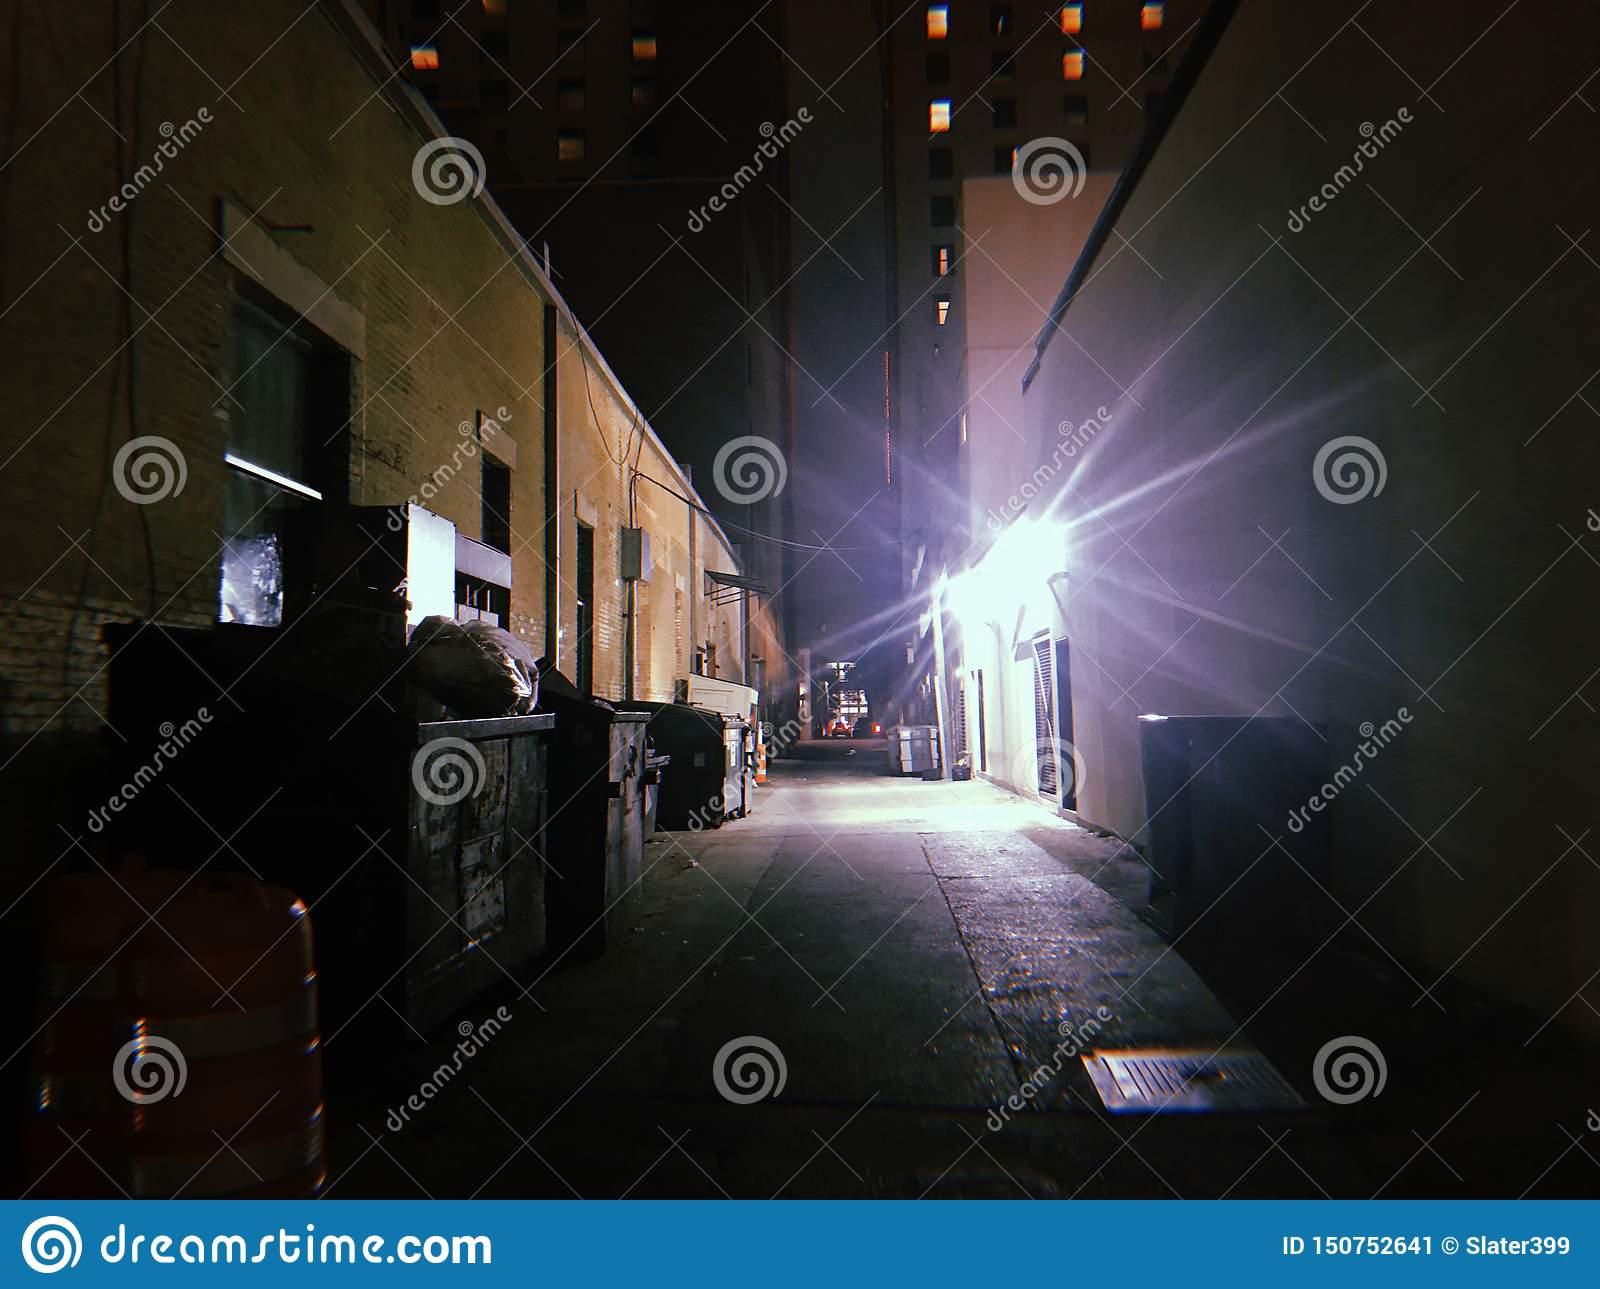 Dark ominous back alley at night